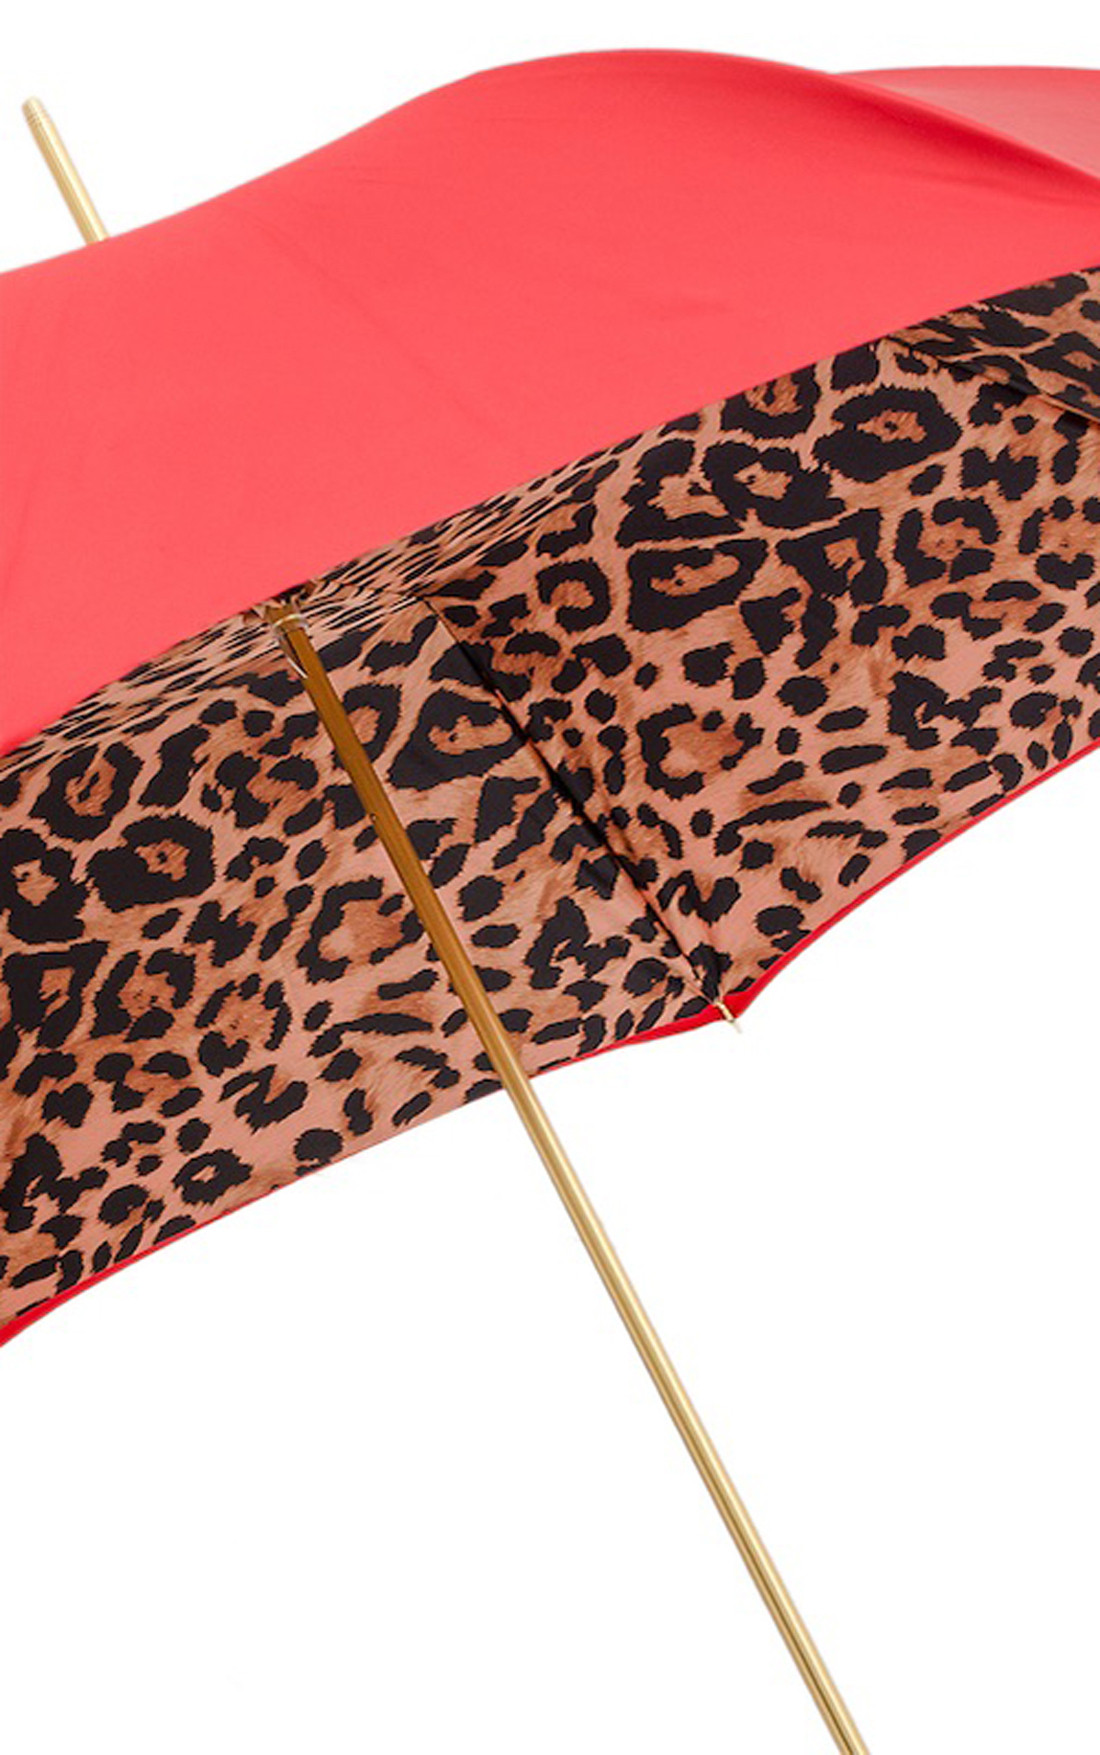 Pasotti - Red Umbrella with Leopard Print Lining (189-RASO5A488/92-T9-ORO-ROSSO)